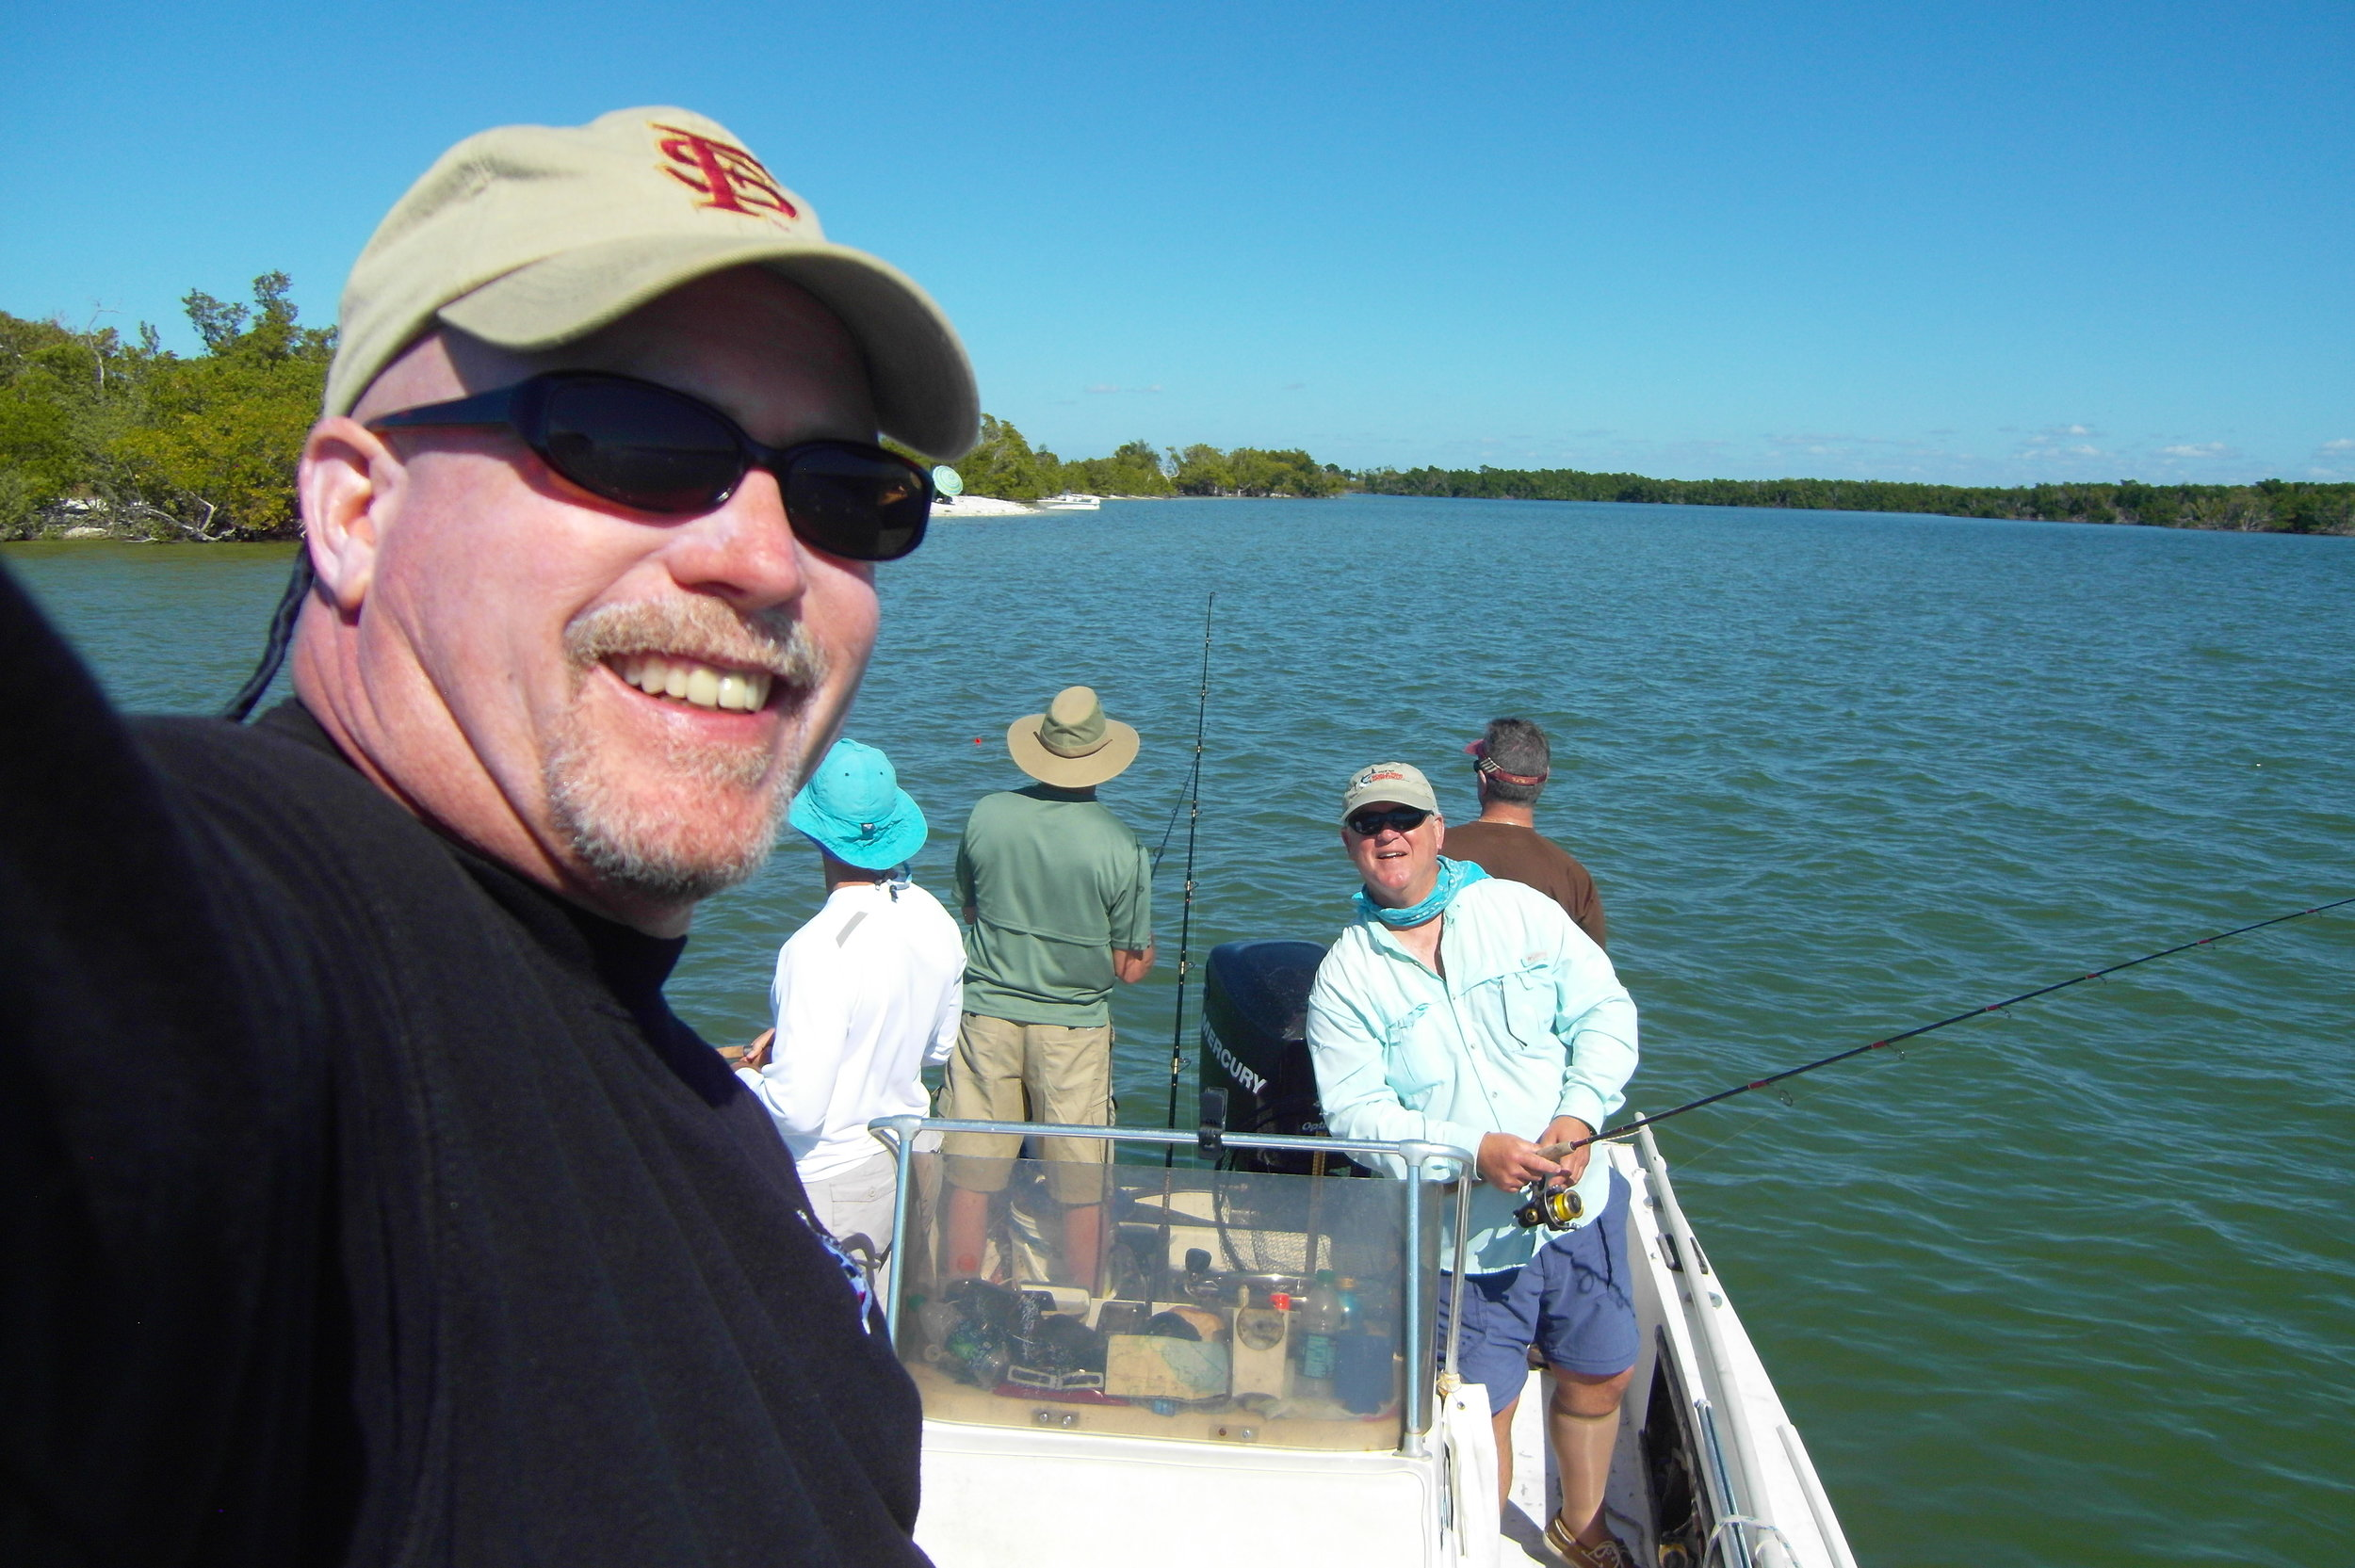 2012 70s-Fishing - GrantMcIntosh, CharlieAtwood.jpg